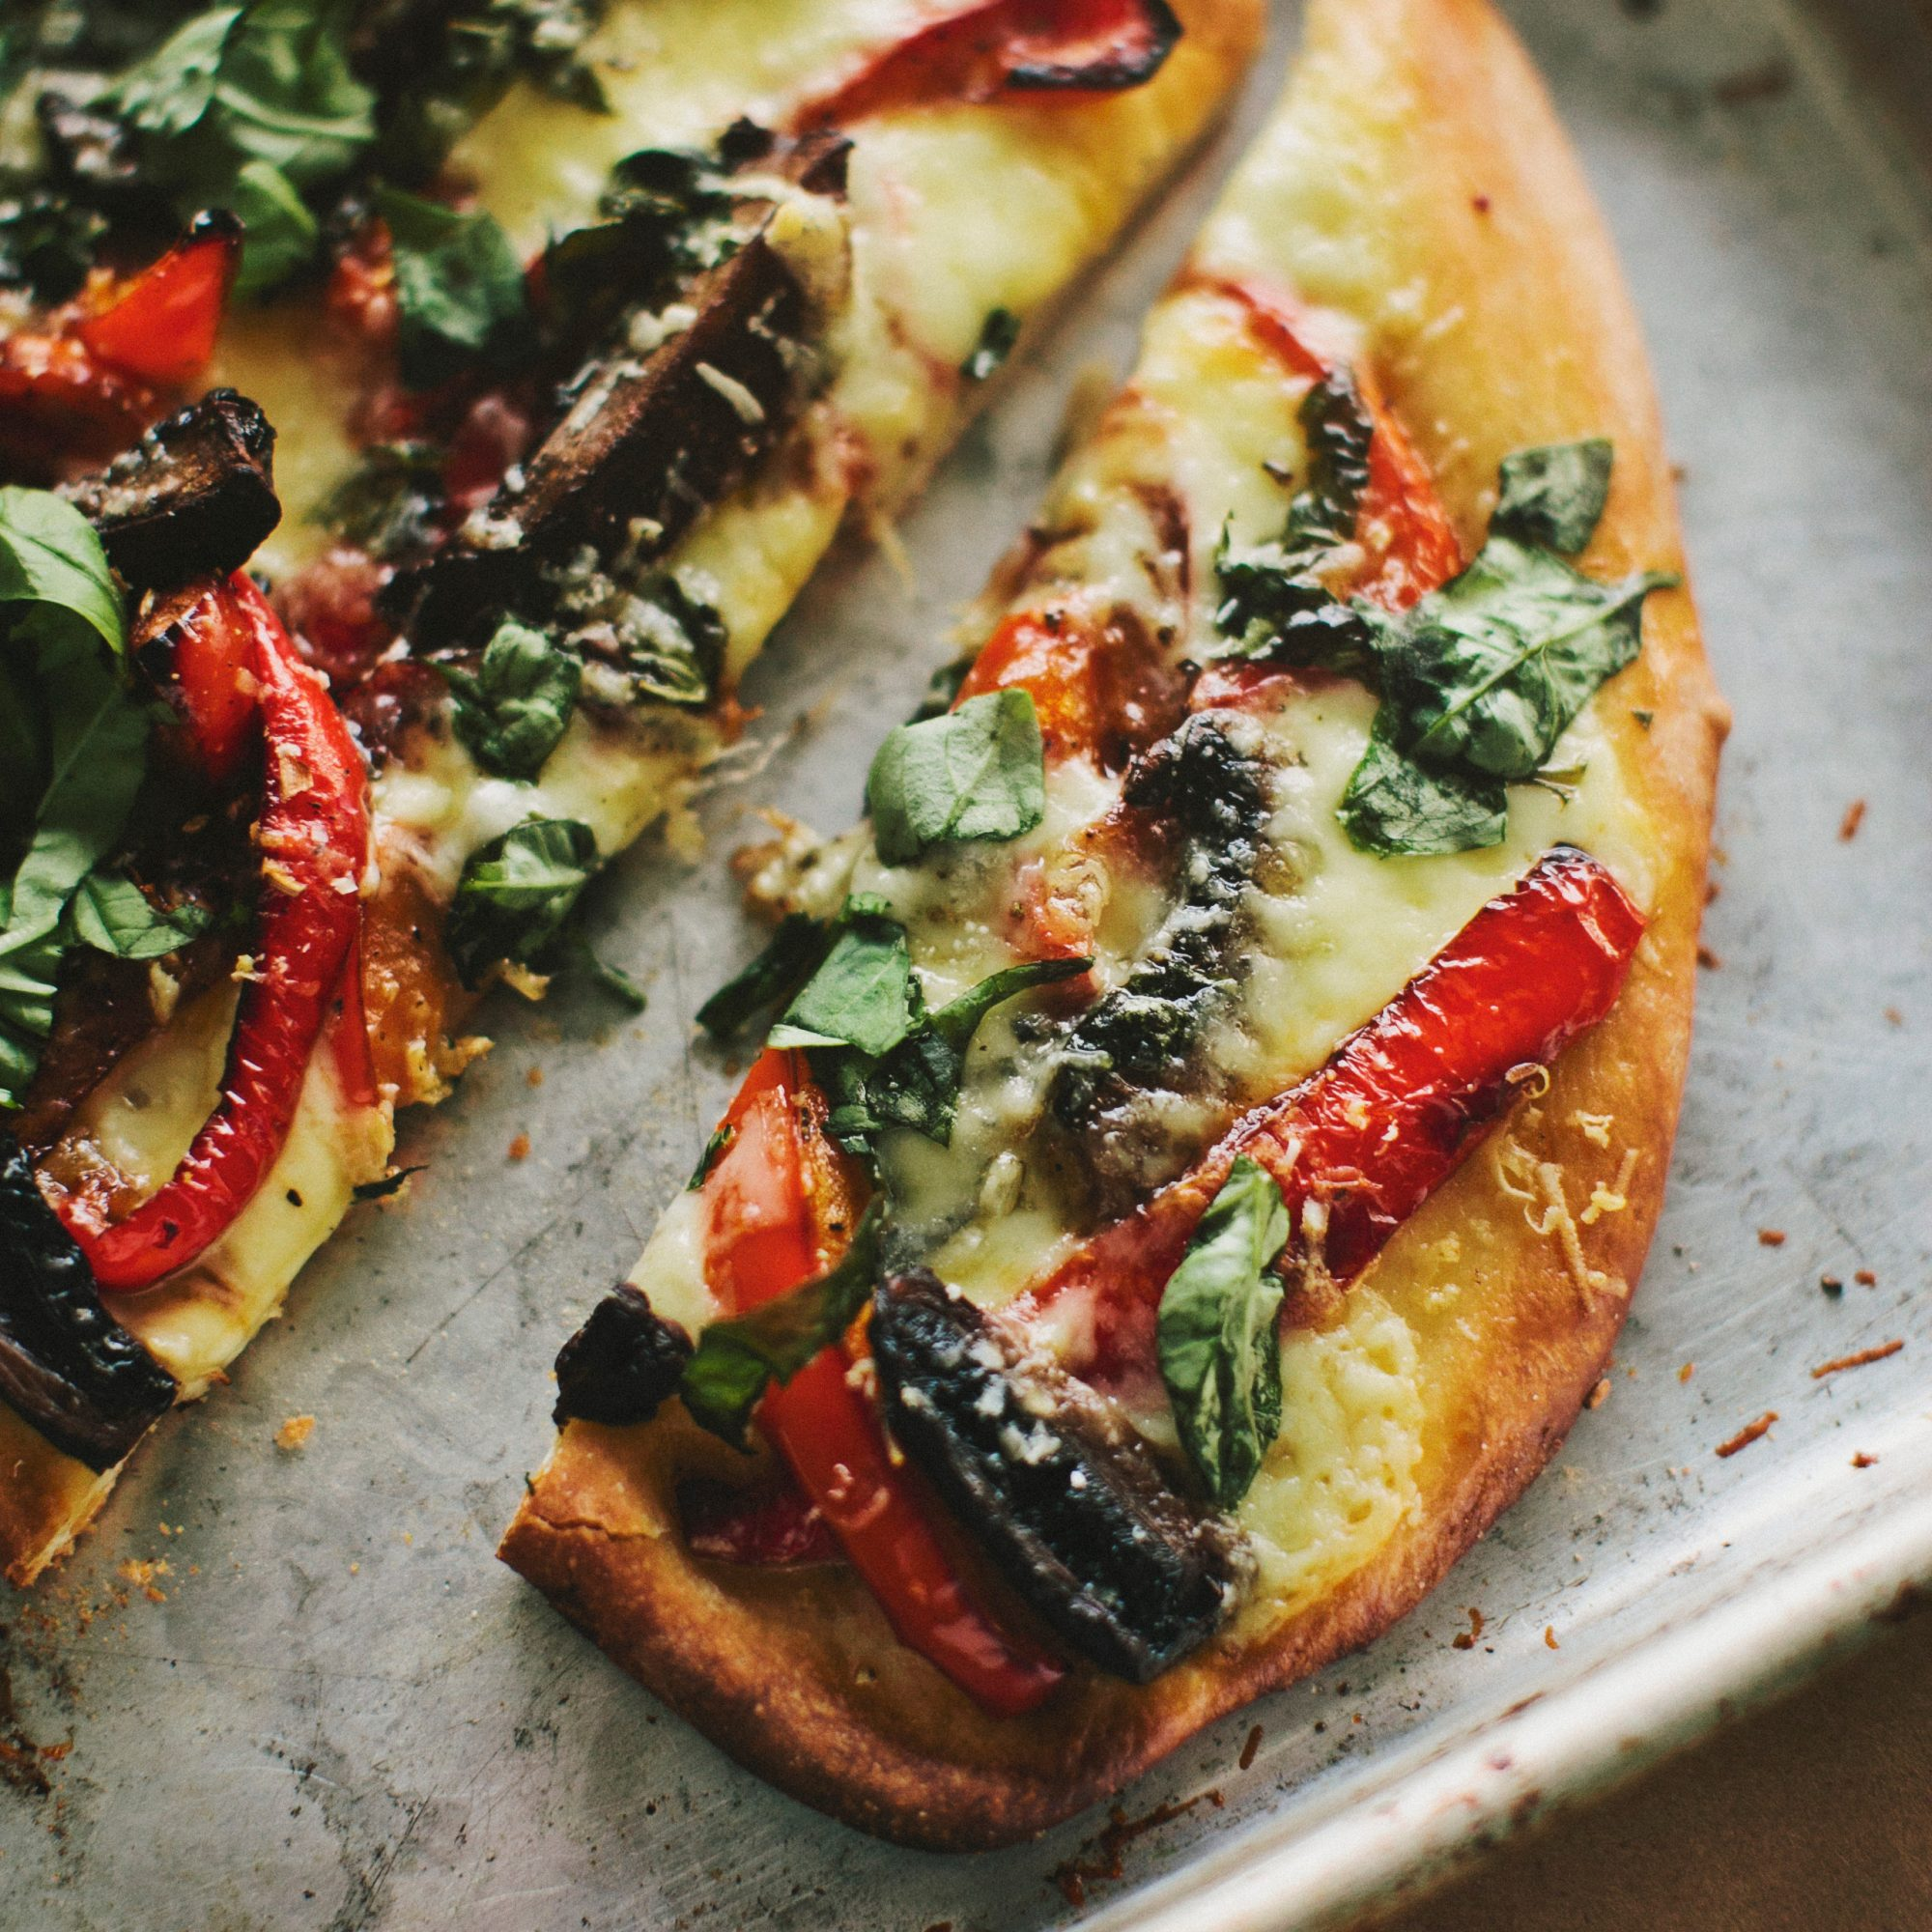 original-201204-r-qfs-portobello-mushroom-red-pepper-pizza.jpg